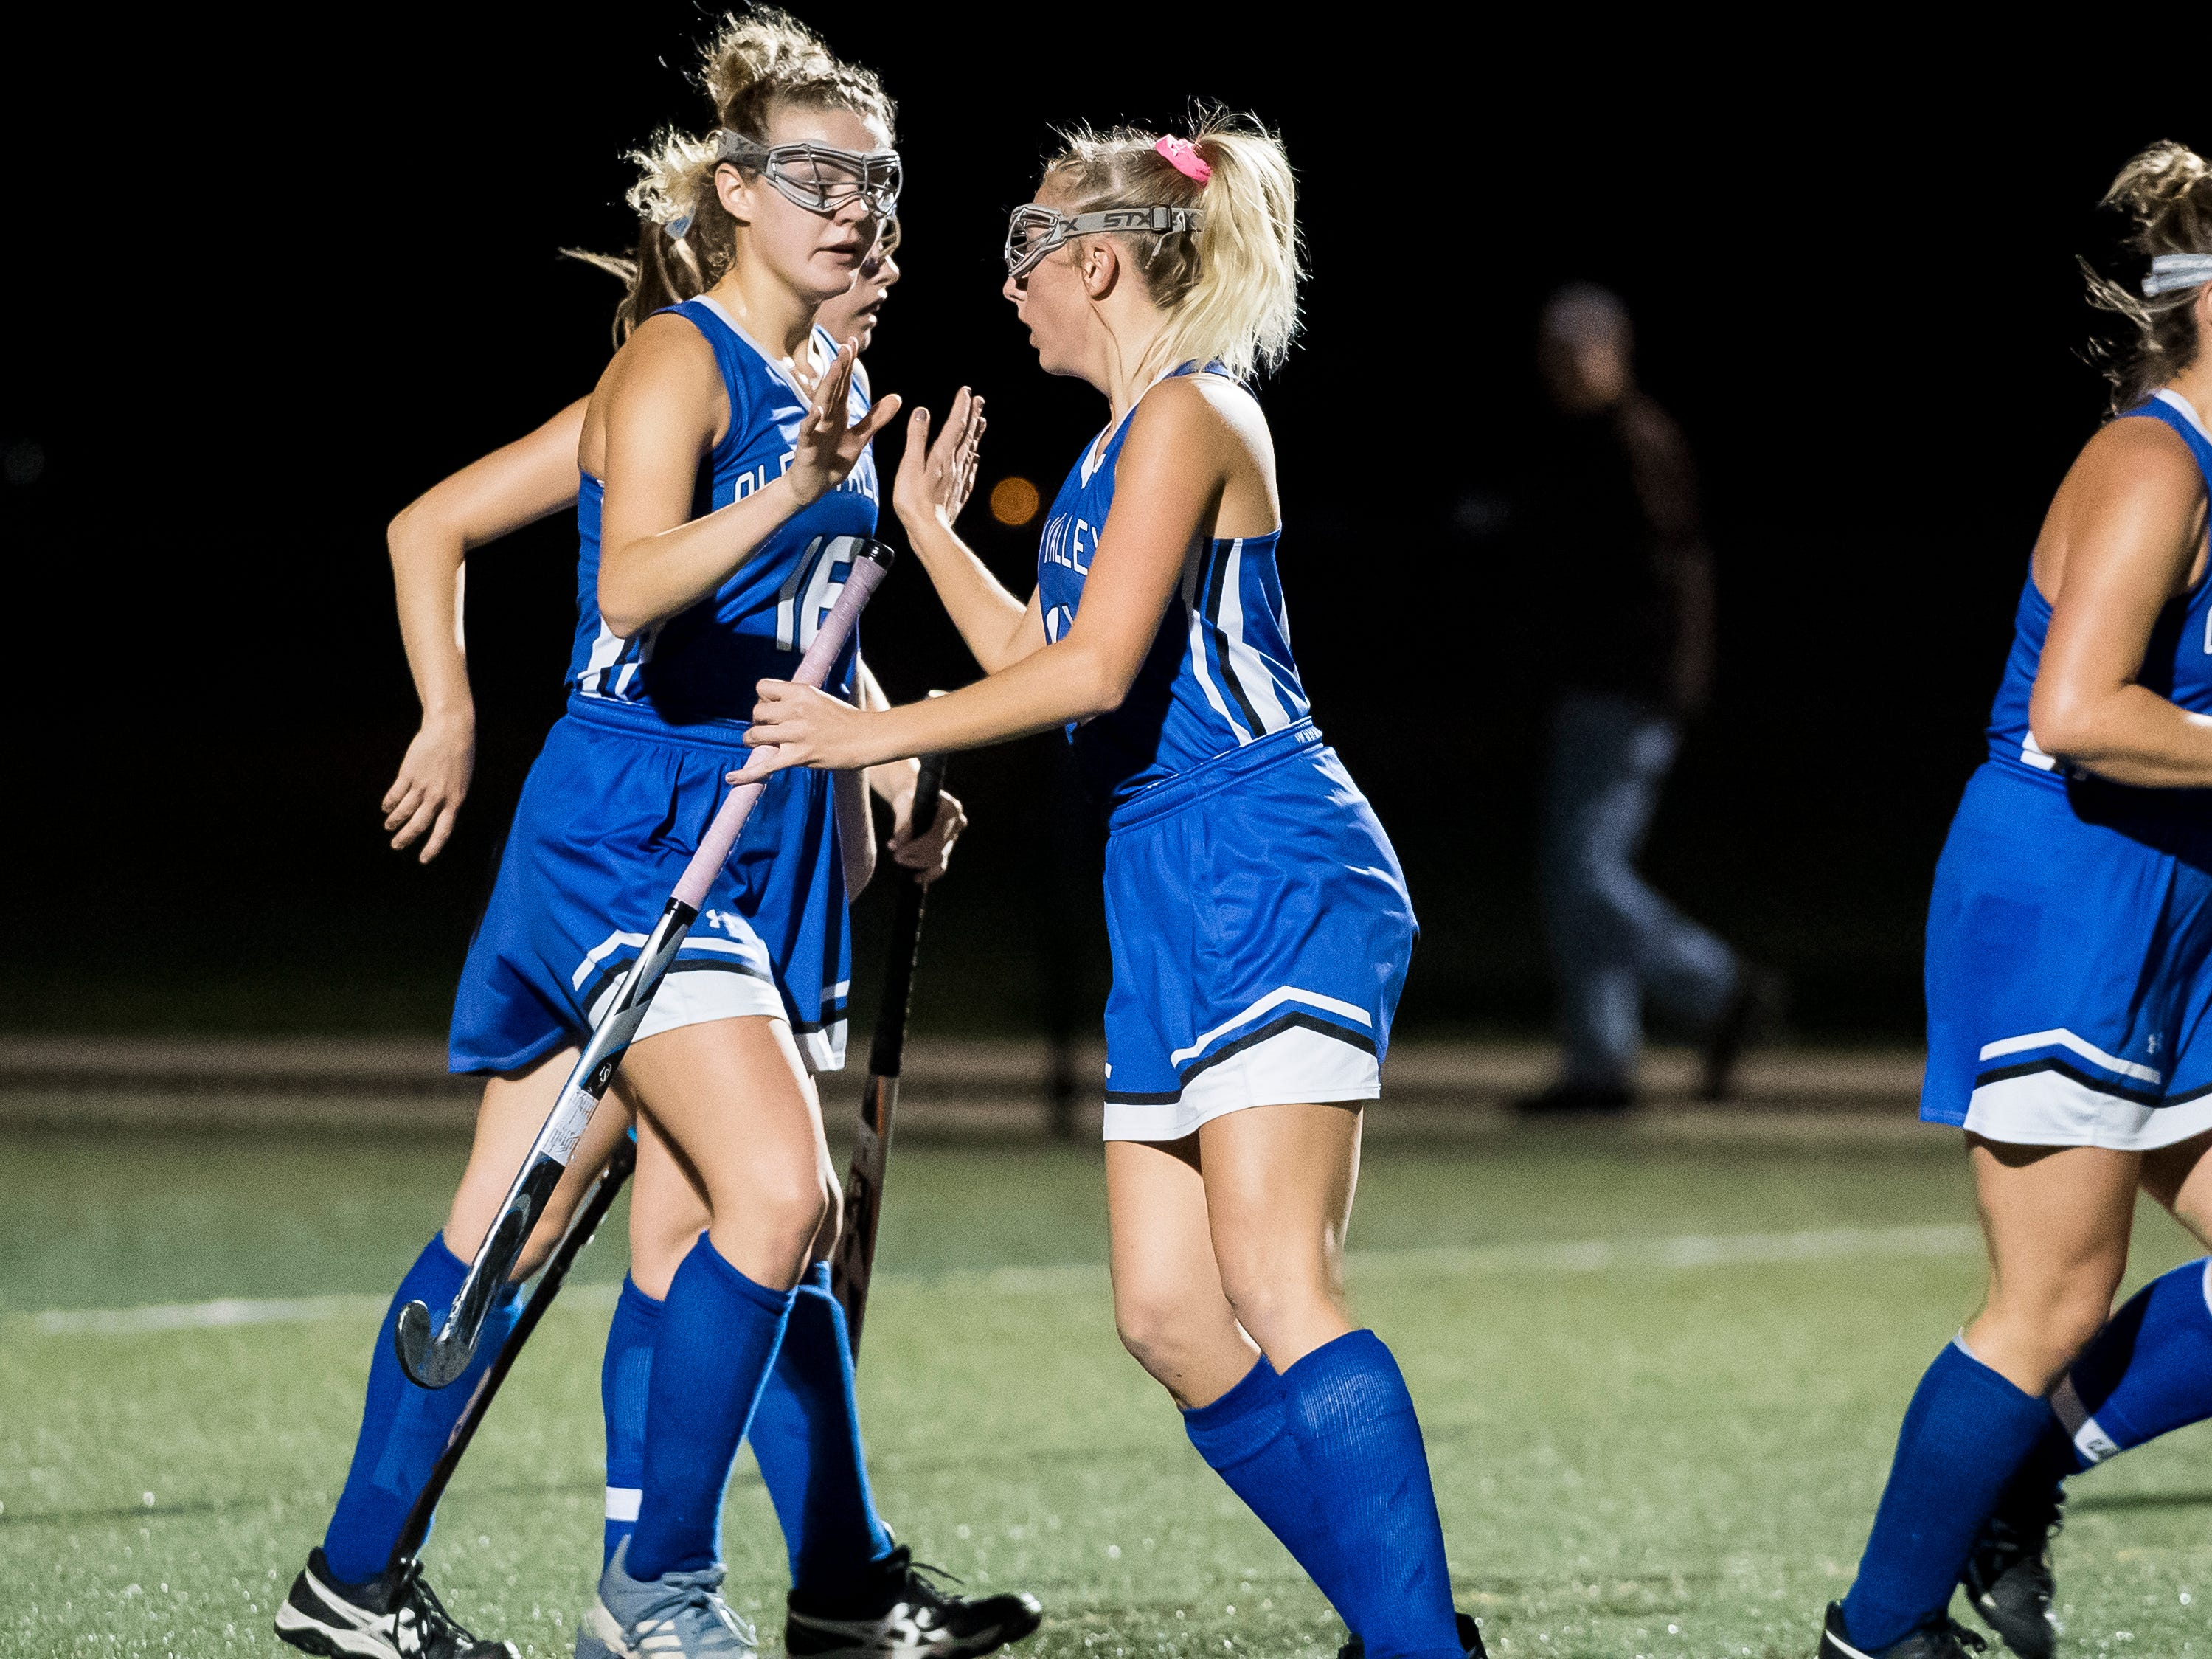 Oley Valley's Sarah Beers, left, and Madison Kline high-five after scoring a goal against Bermudian Springs during a District III Class A semifinal game at Lower Dauphin Middle School on Wednesday, October 31, 2018. The Eagles fell 5-0.